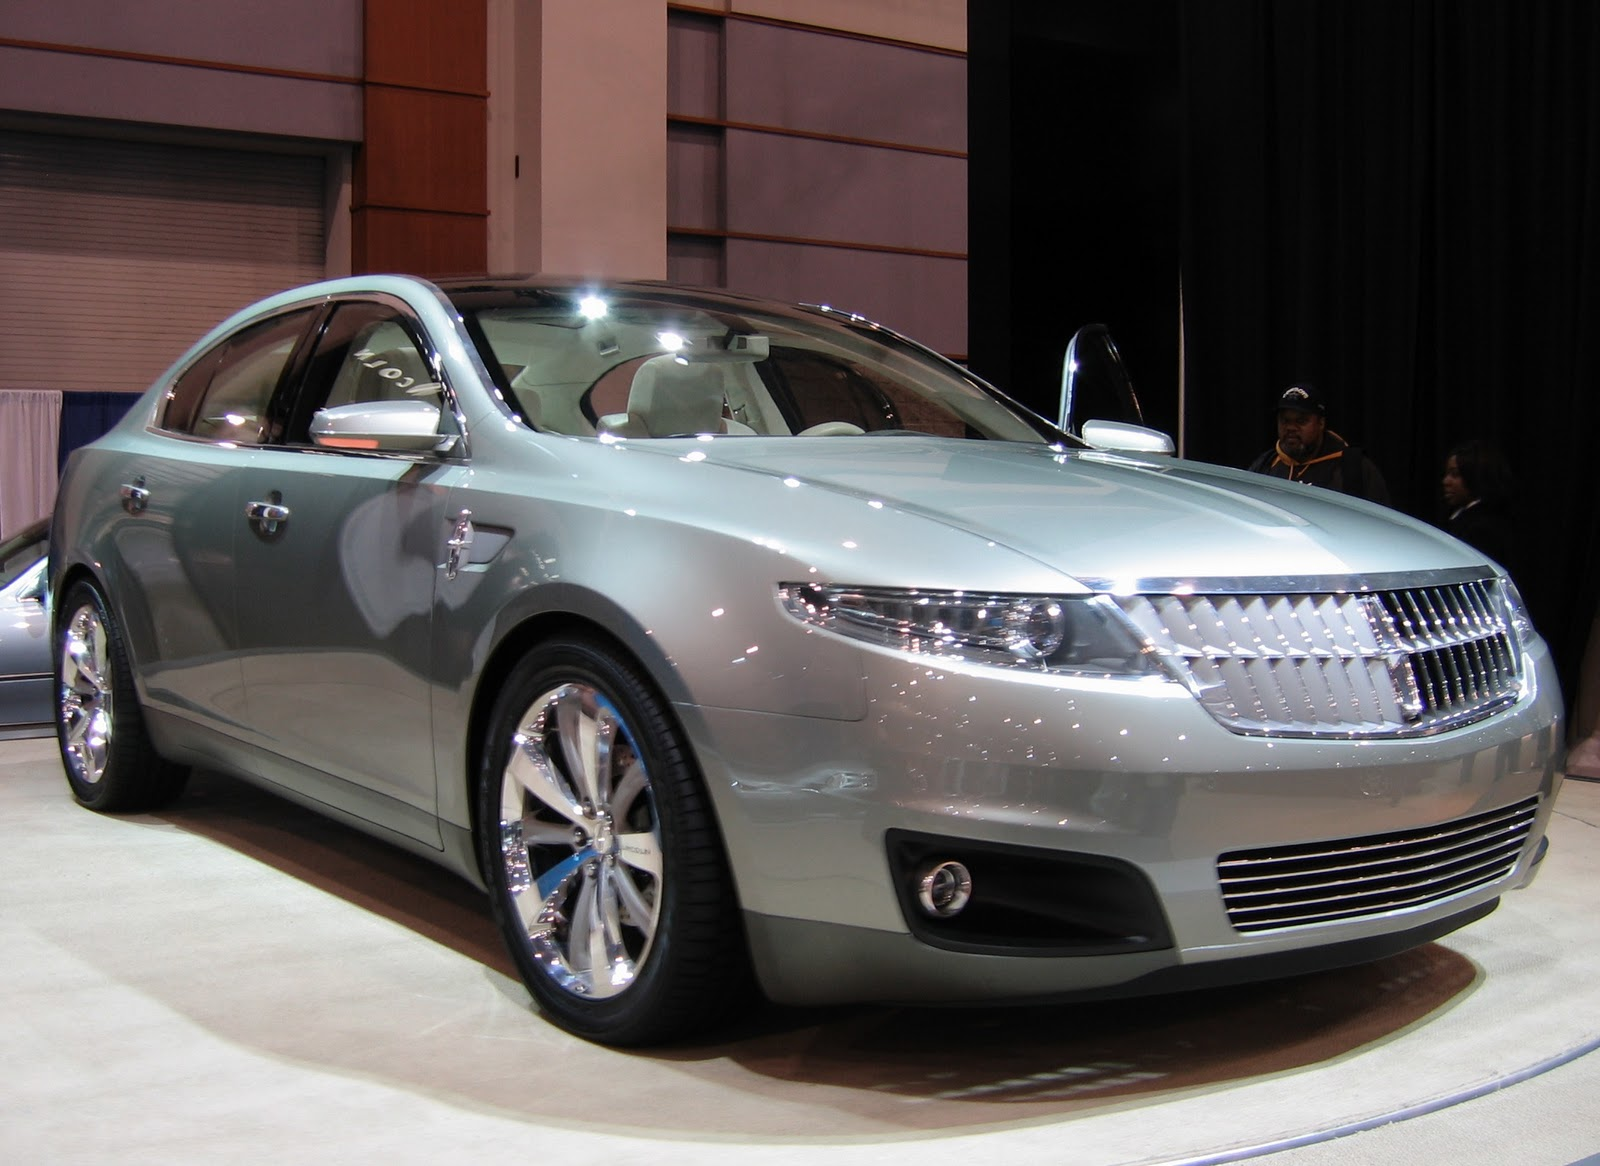 2012 Lincoln MKZ Sport Cars and Motorcycle News